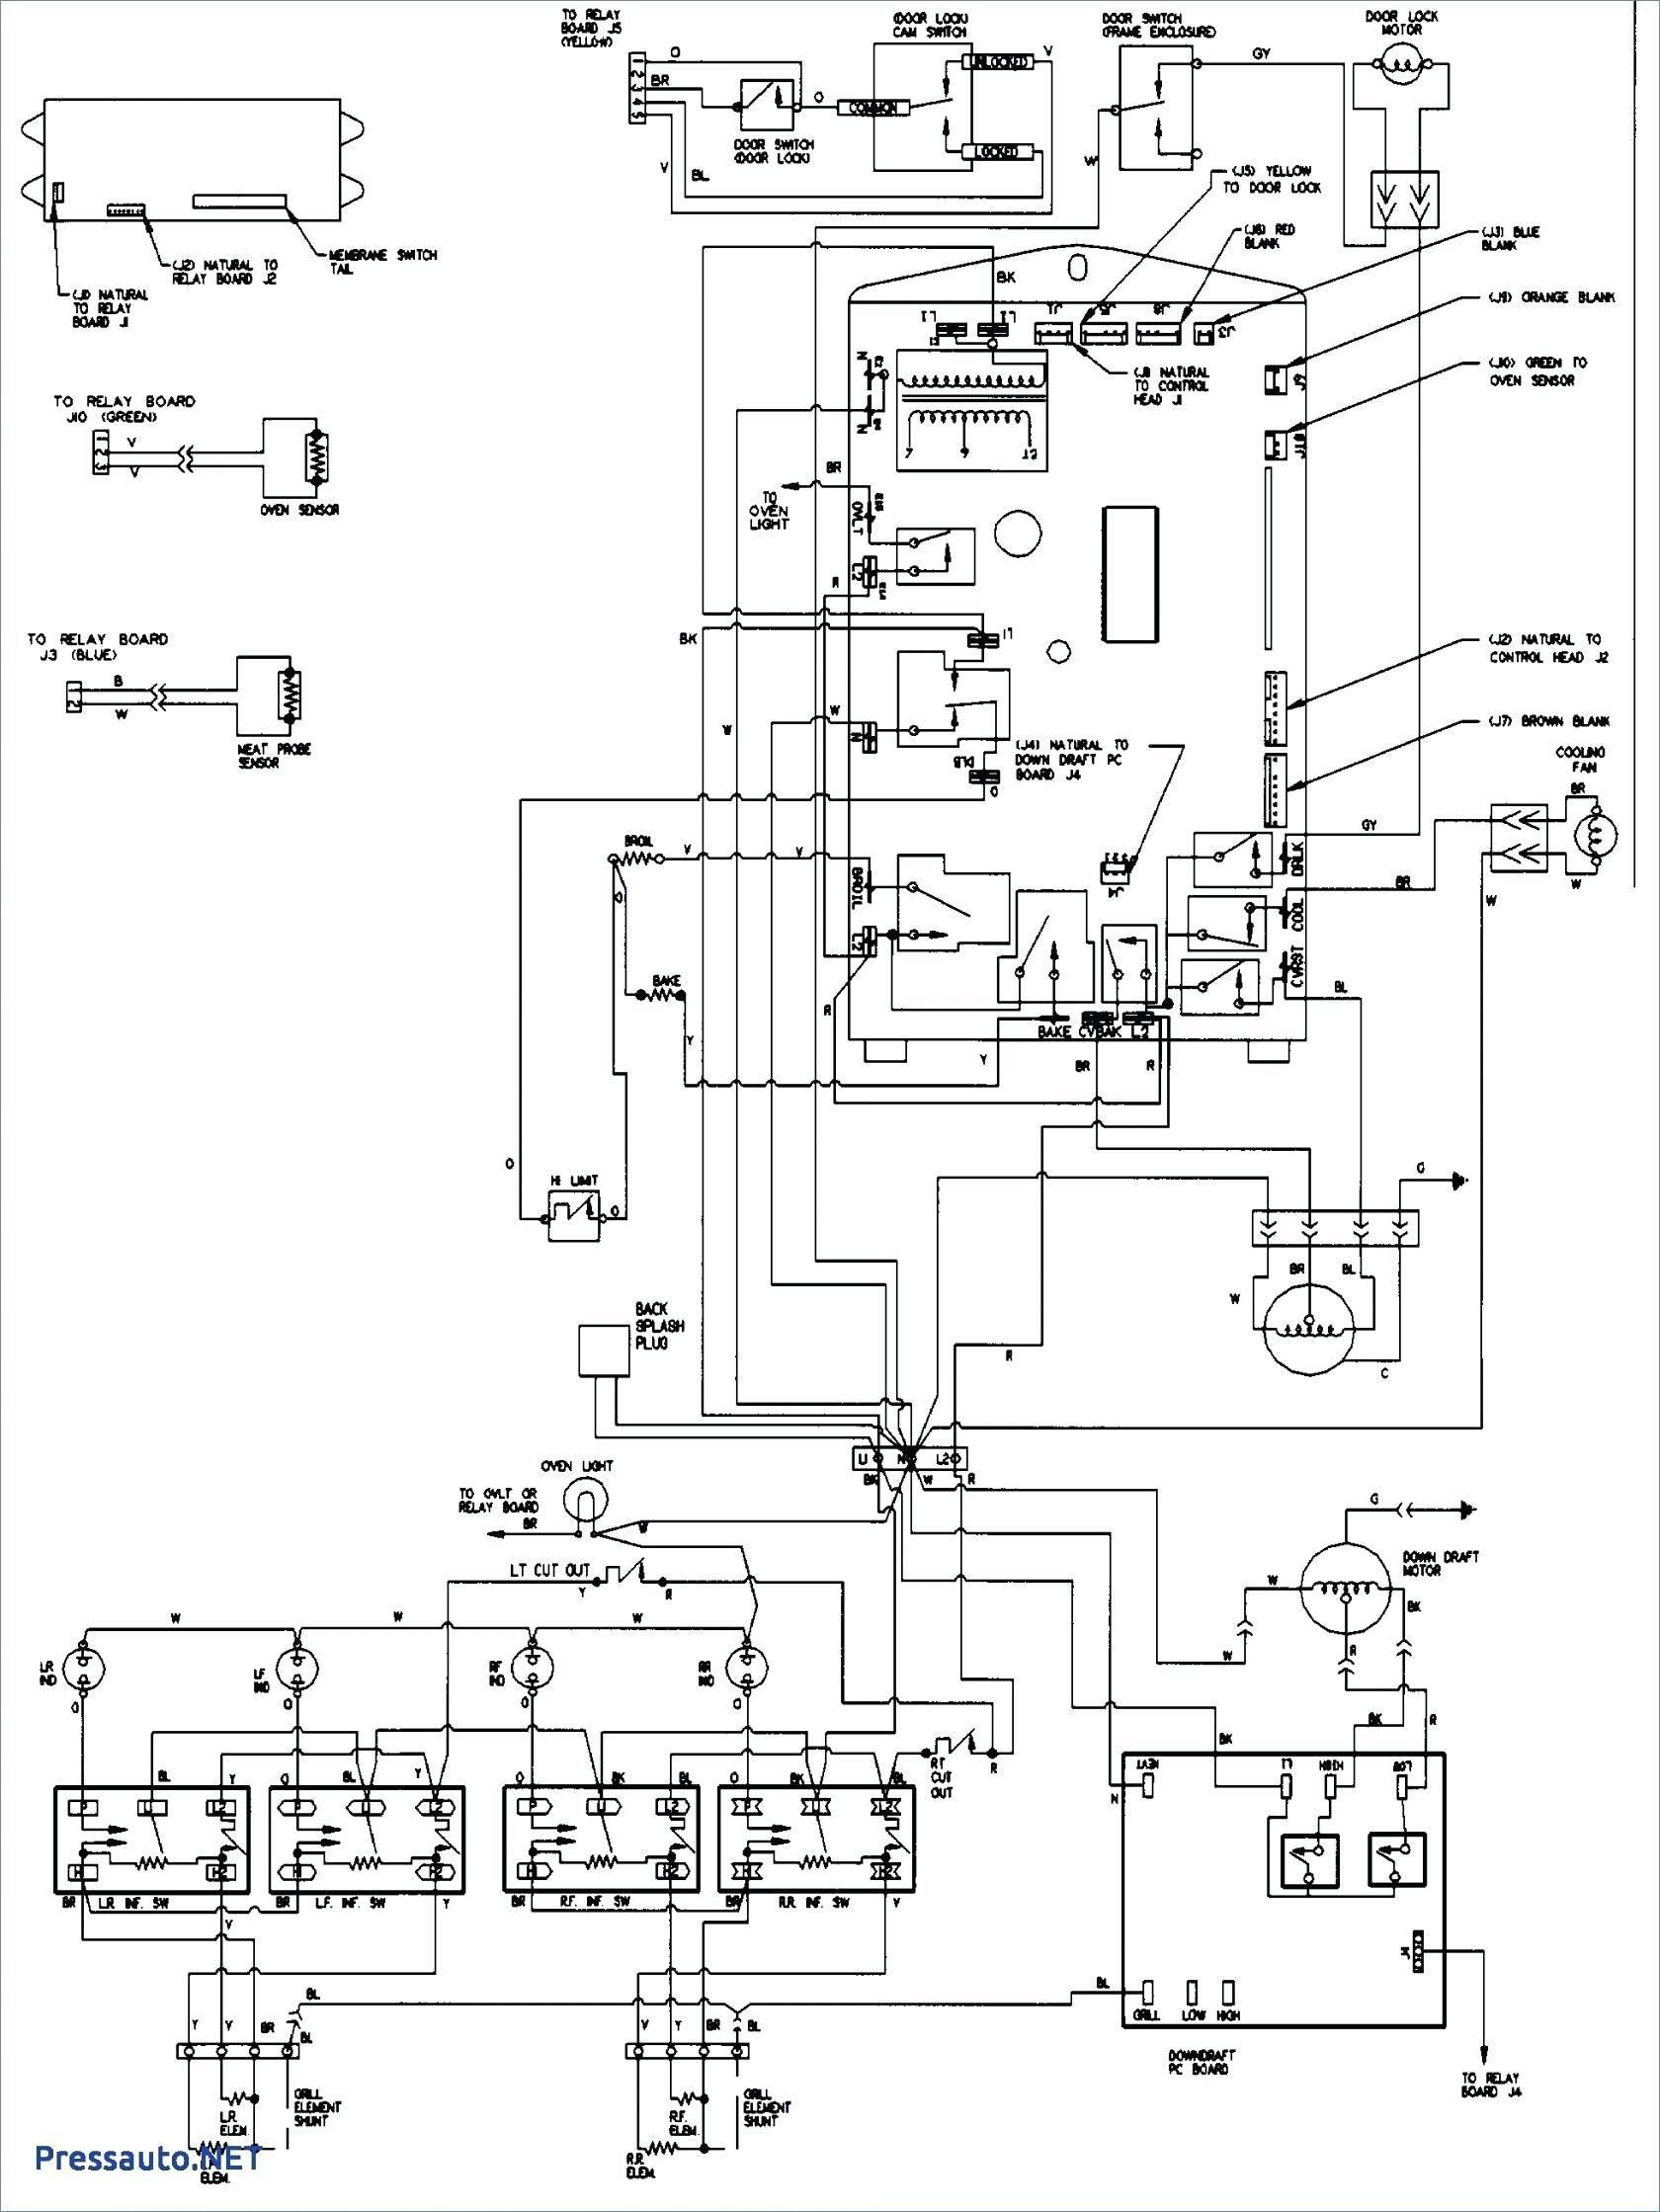 Gas Furnace Wiring Diagram Gas Furnace Wiring Diagram